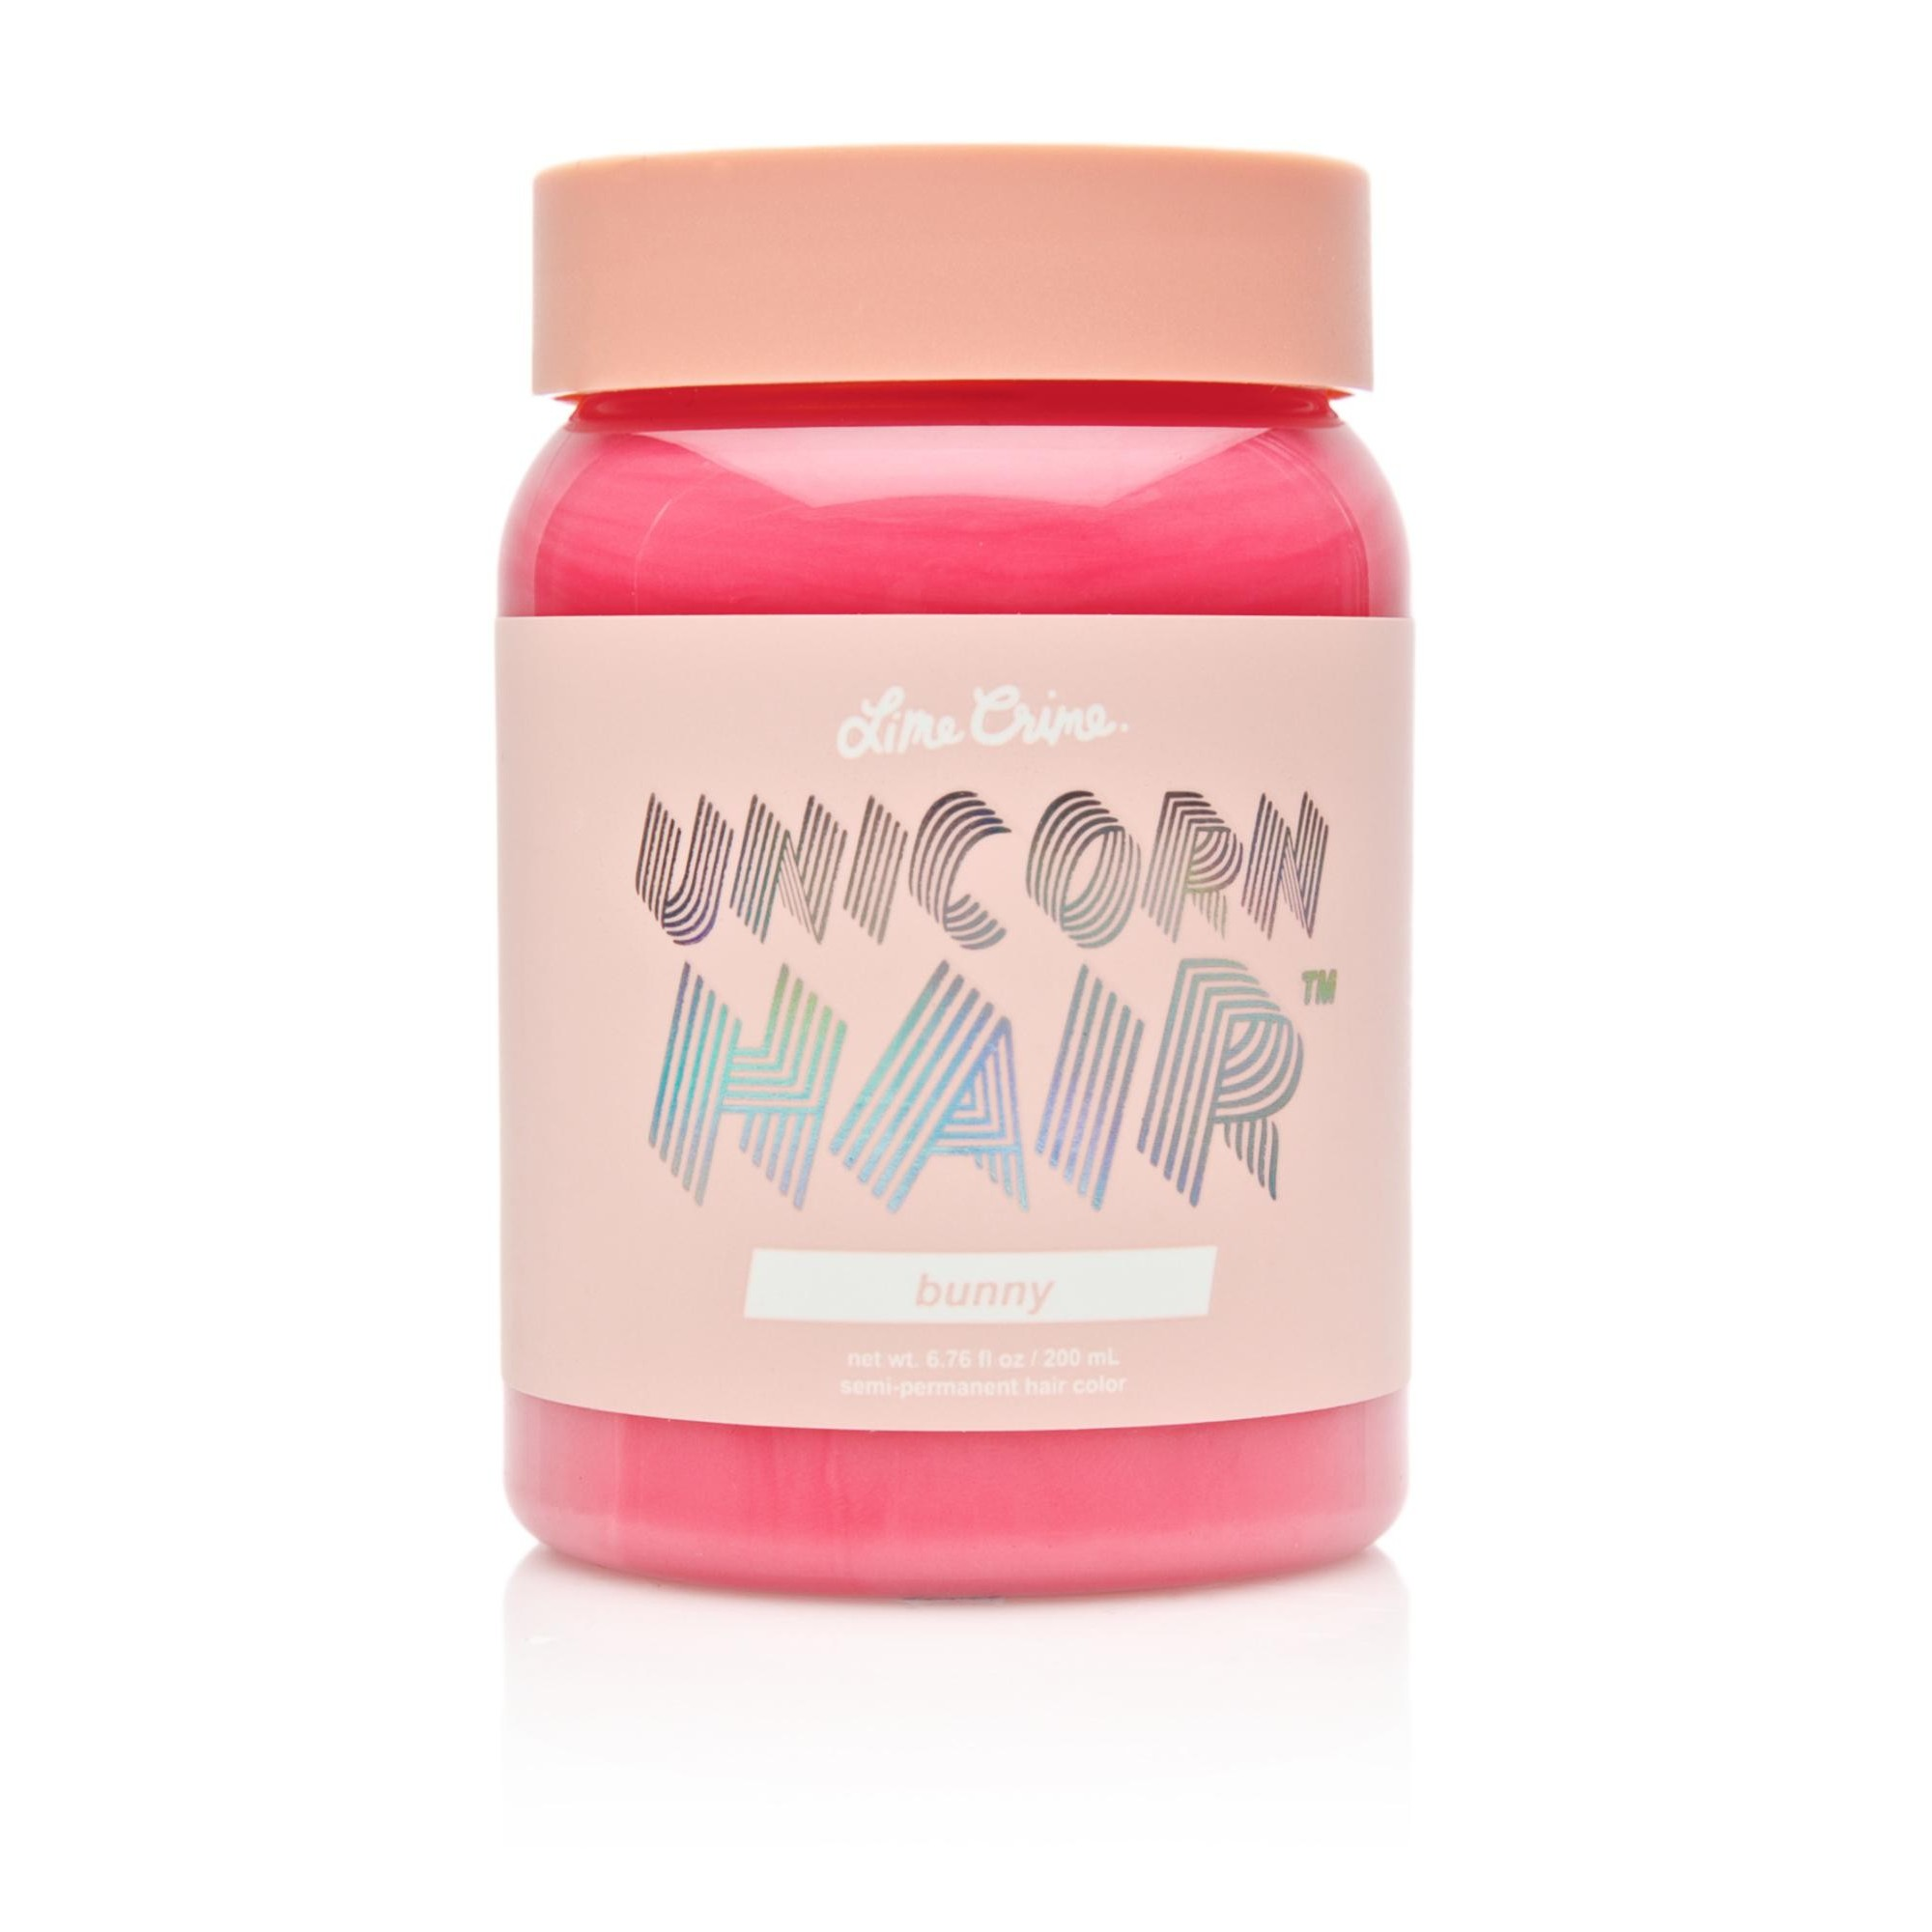 Lime Crime Unicorn Hair Bunny